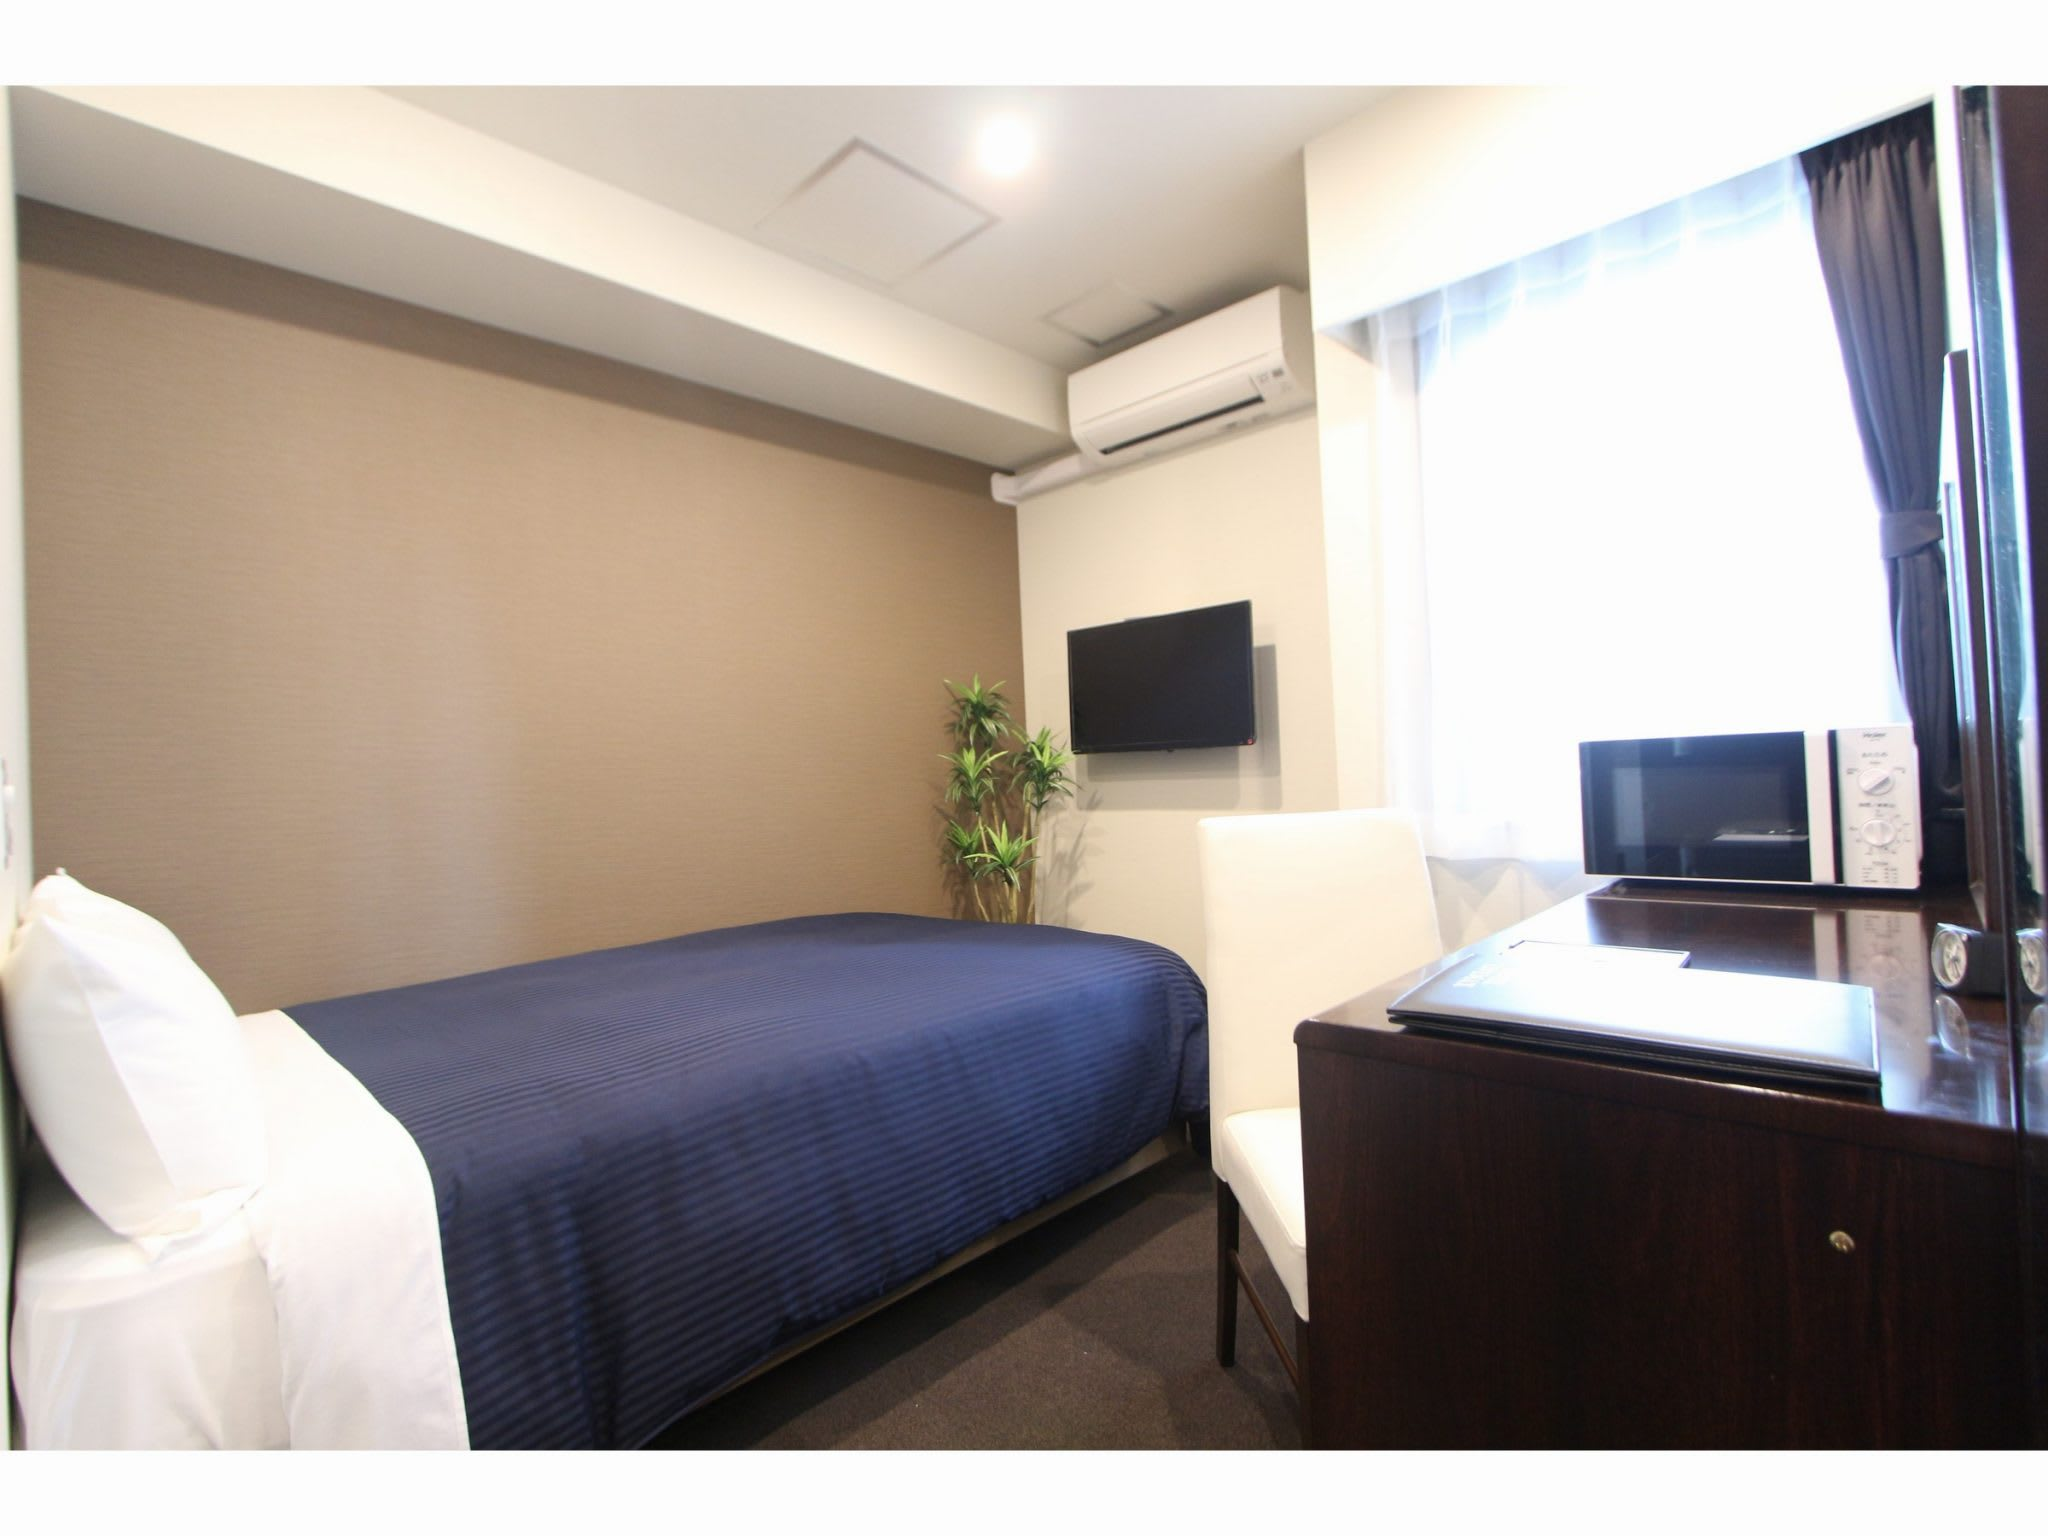 About the Type of Guest Room and Facility of「Hotel Livemax Higashi Ginza」